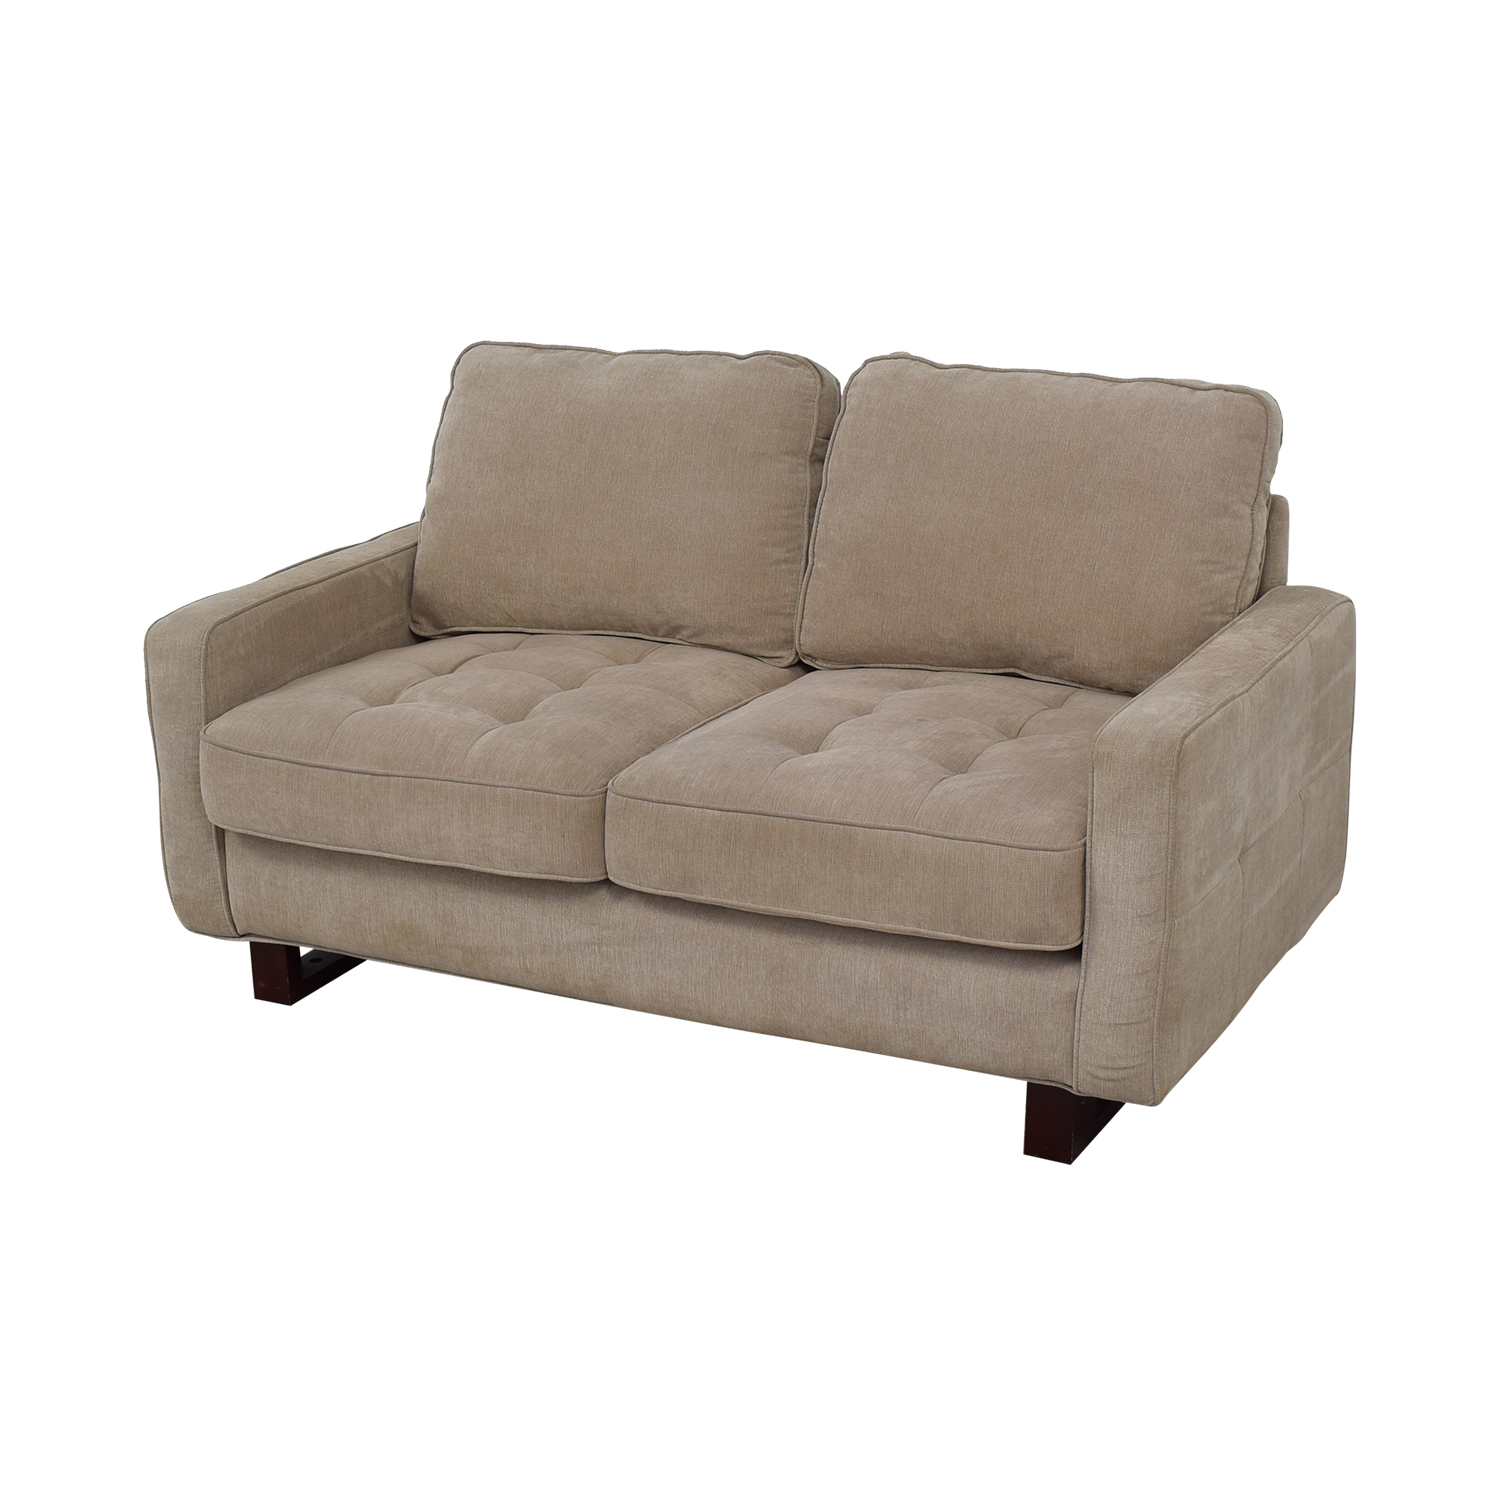 West Elm West Elm Beige Two Cushion Loveseat Sofas